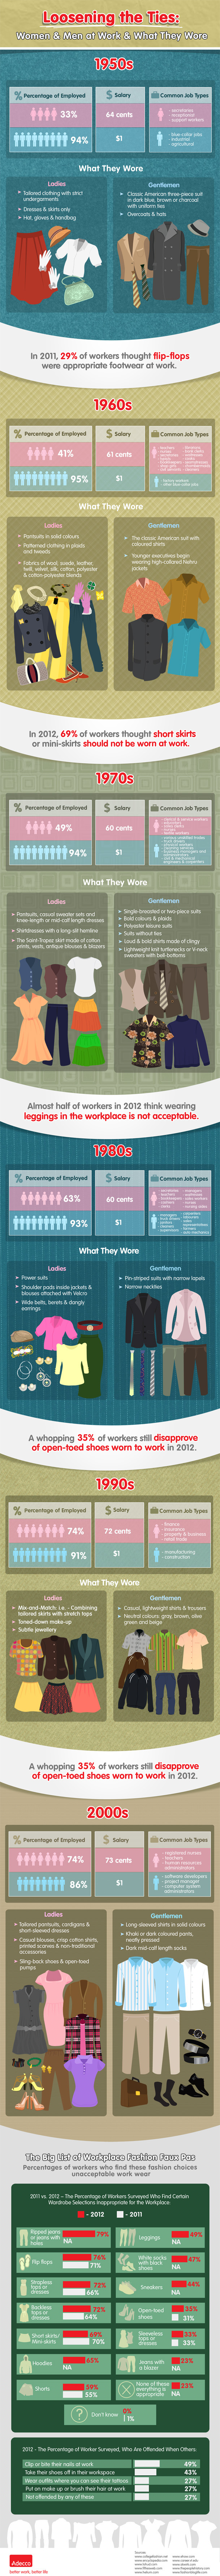 2. Loosening The Ties Women & Men at Work & What They Wore